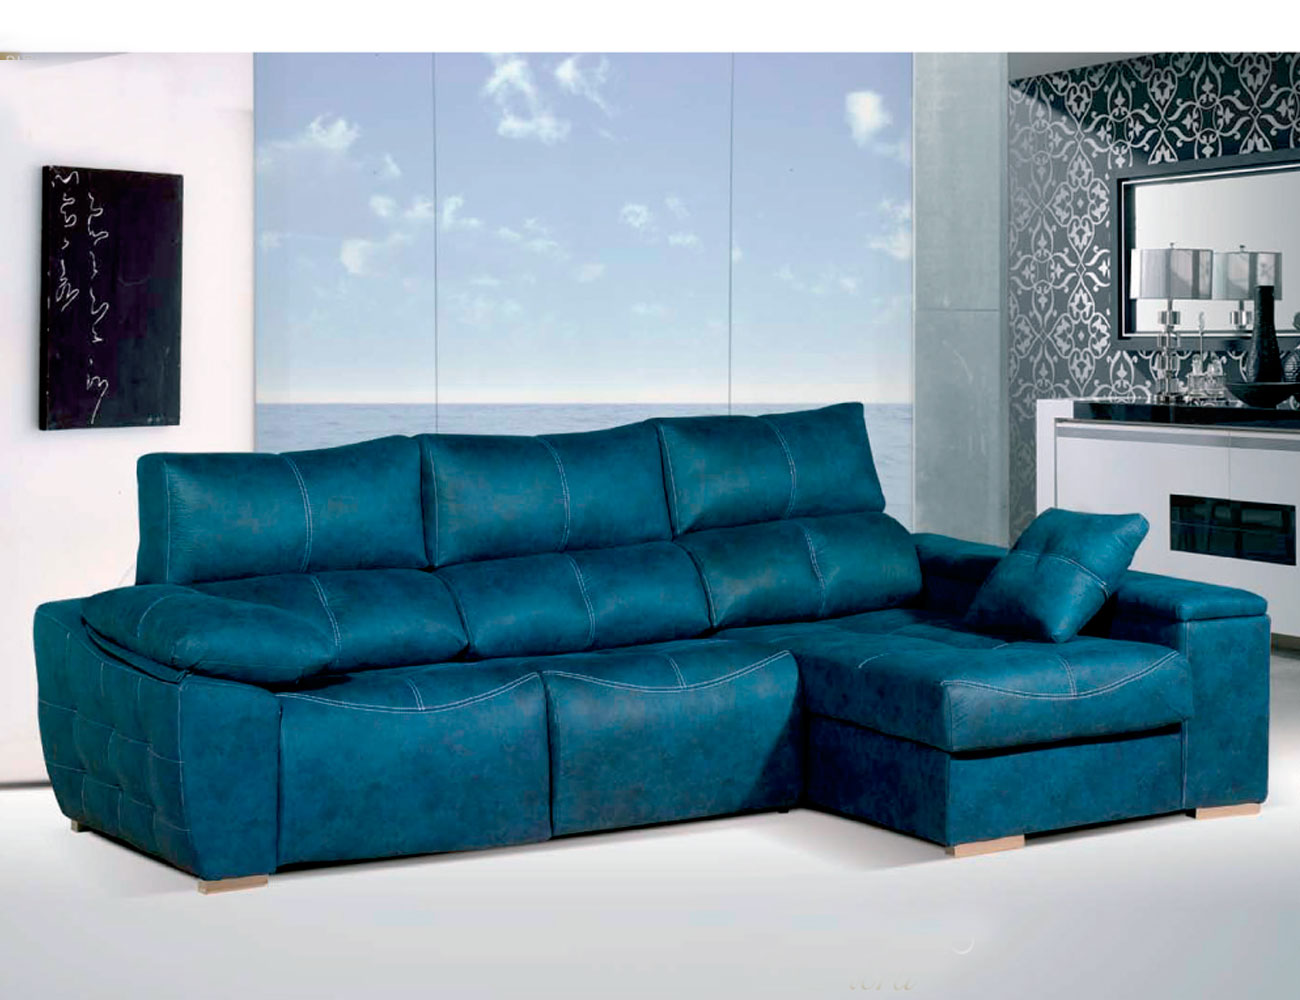 Sofa chaiselongue relax 2 motores anti manchas turquesa19